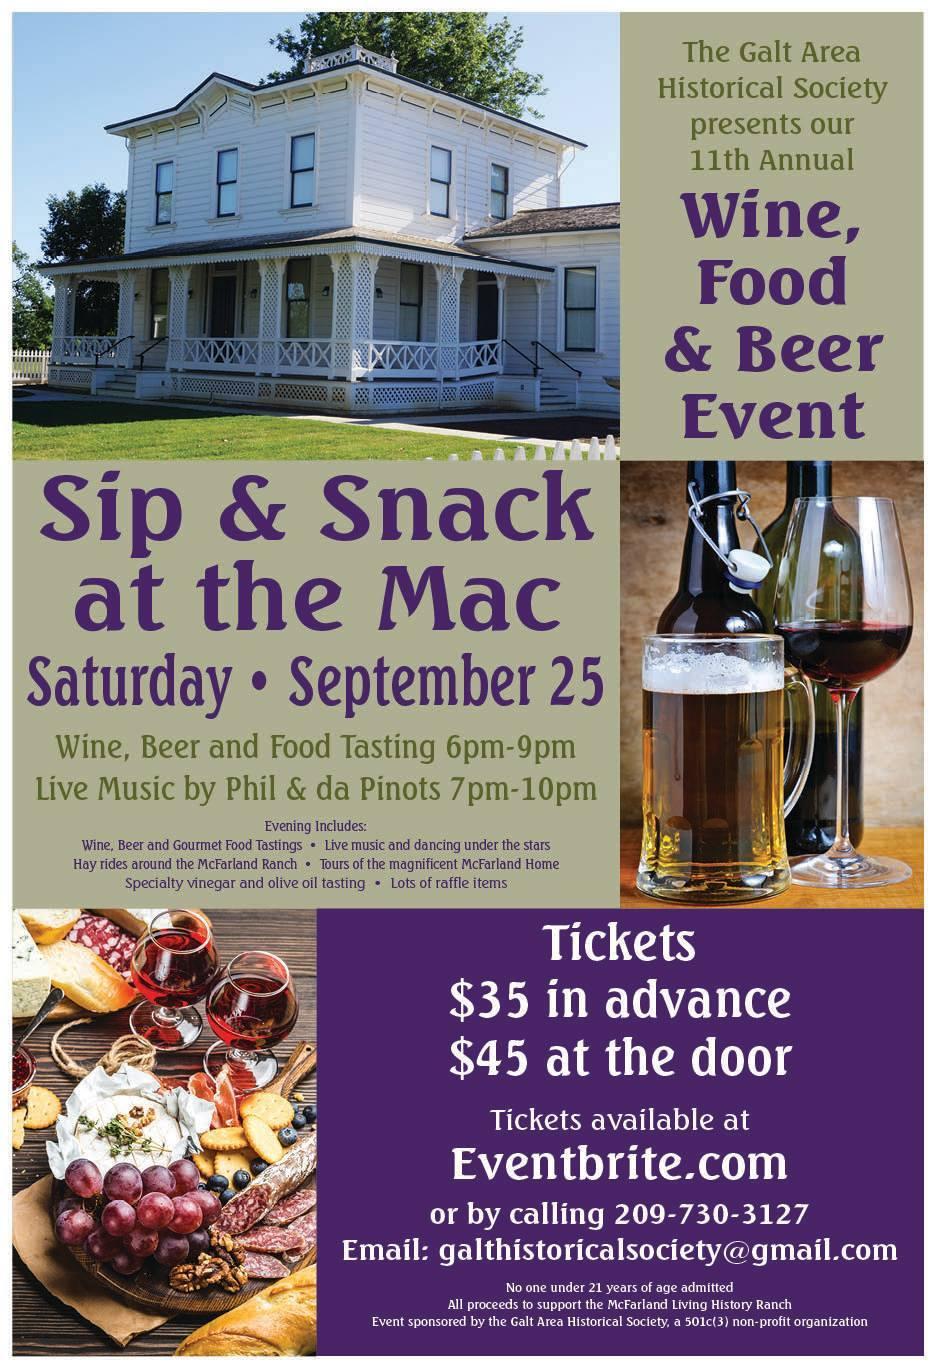 Sip & Snack at the Mac event flyer - Sept 25 2021 6 pm to 10 pm